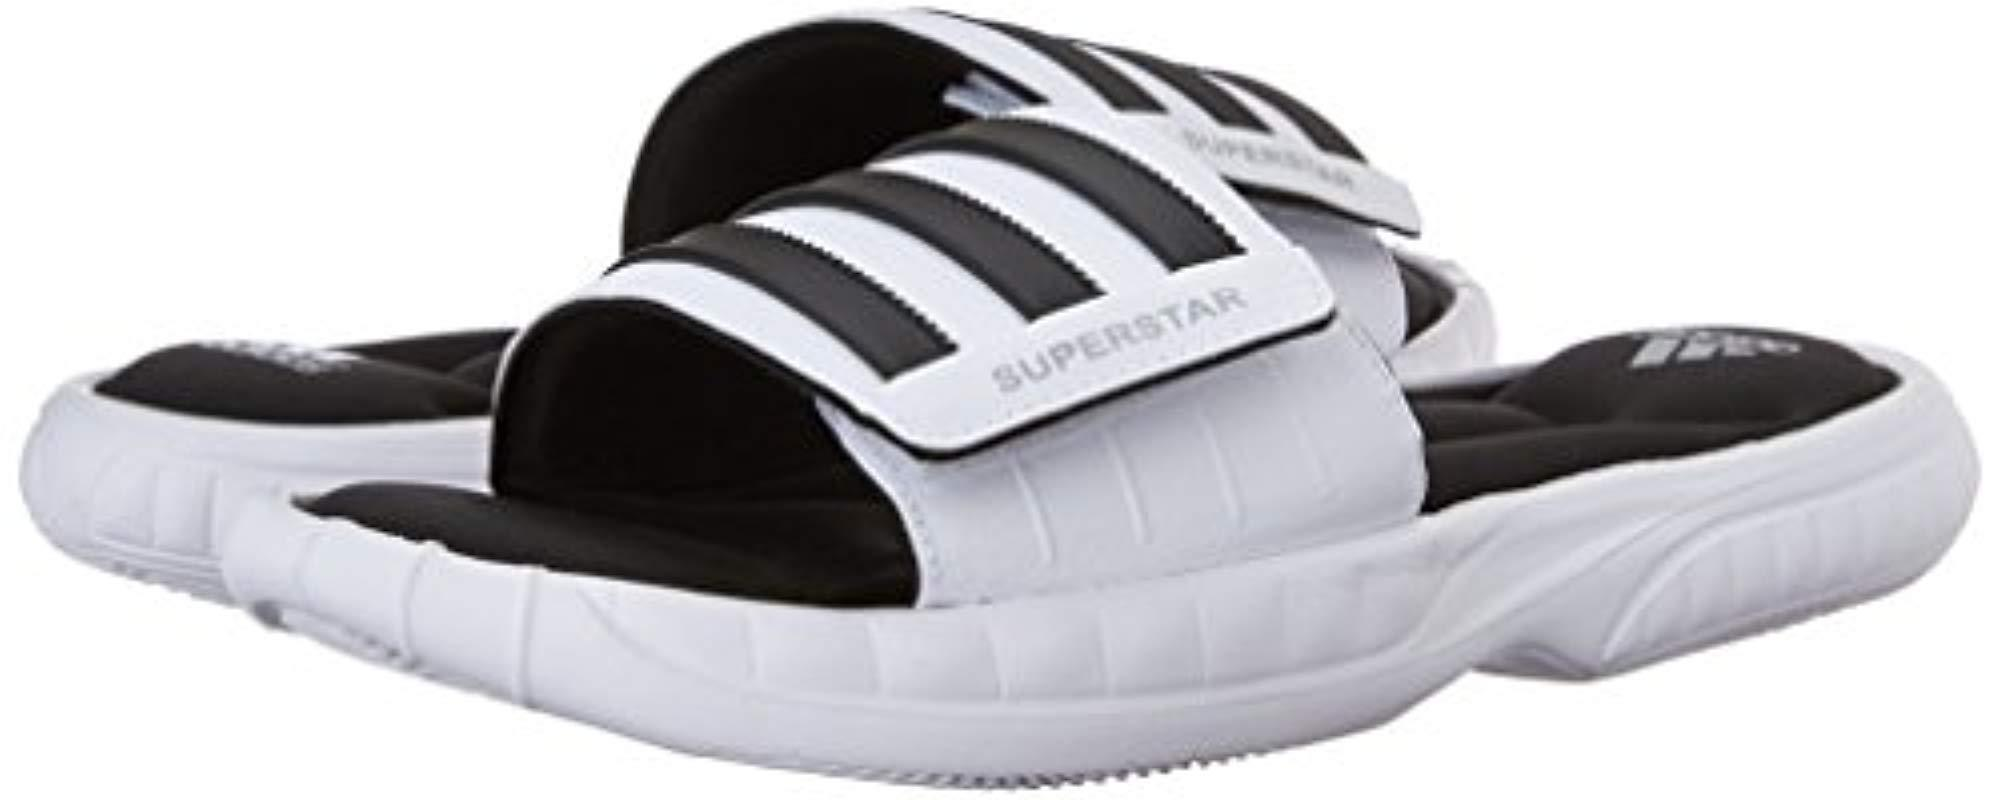 adidas Synthetic Superstar 3g Slide for